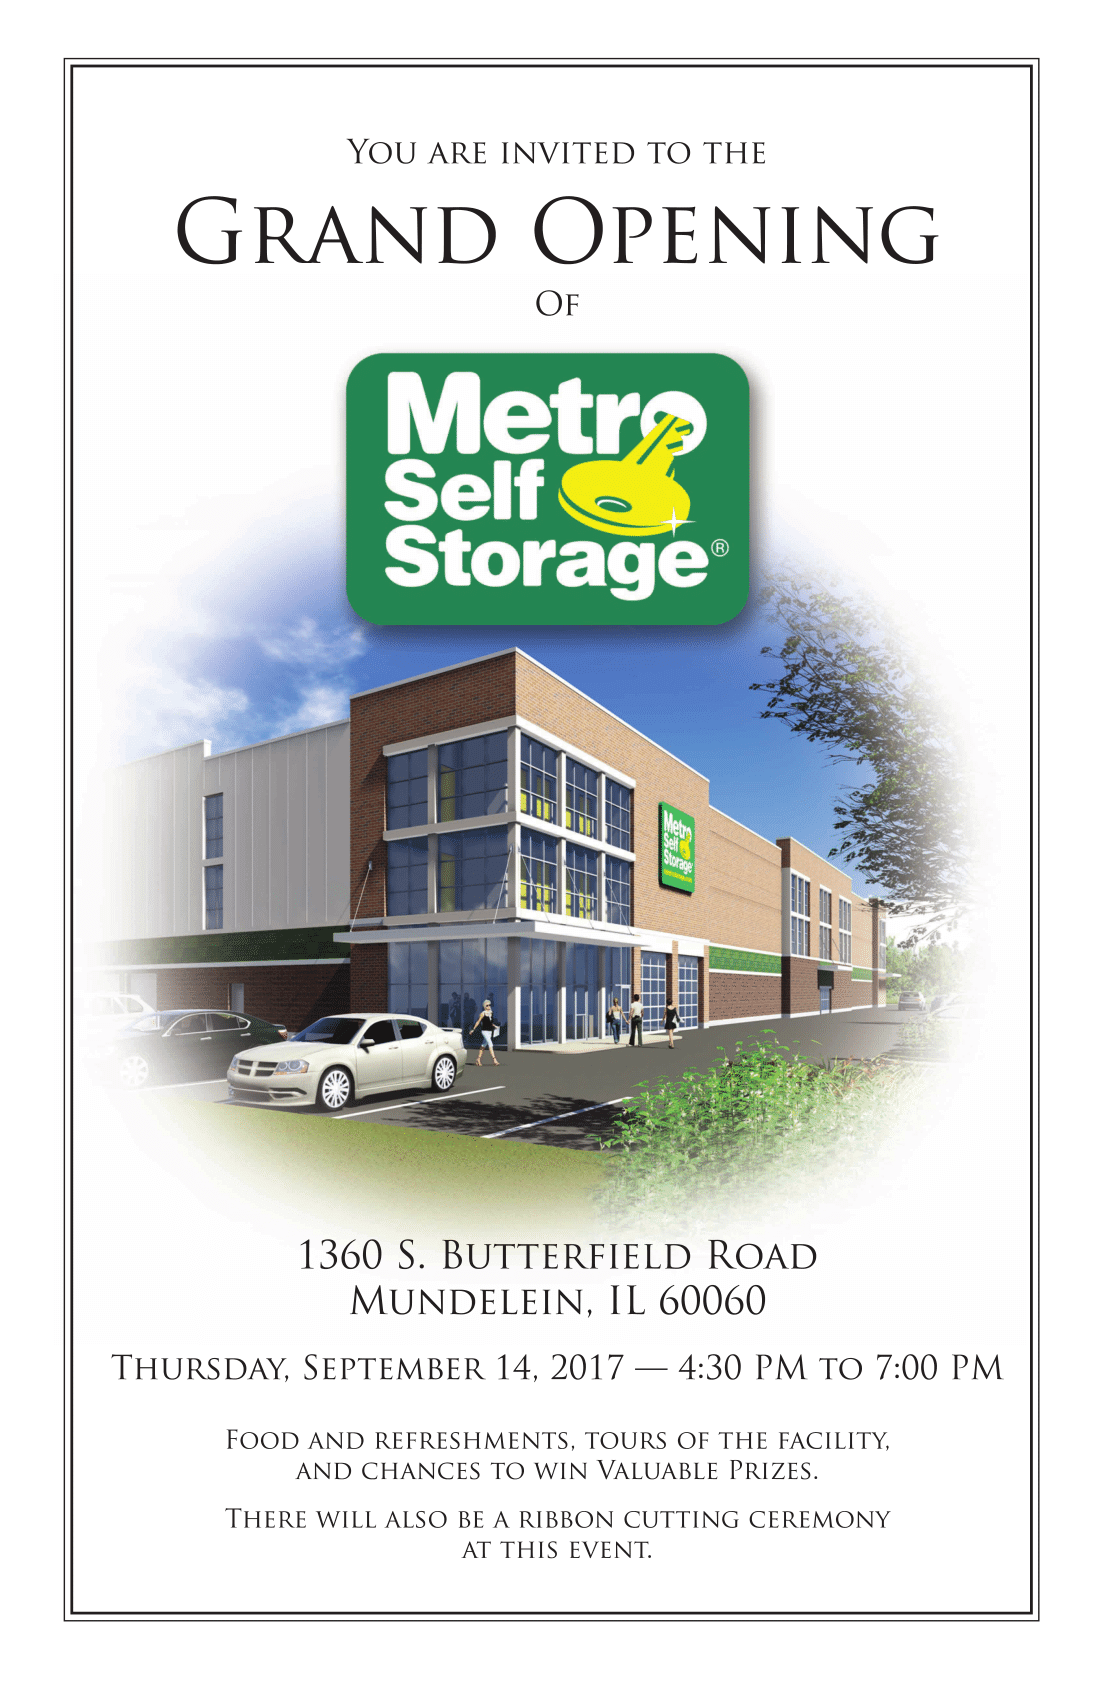 Metro Self Storage Build New Climate Controlled Storage Facility in Mundelein, IL Open House Invitation